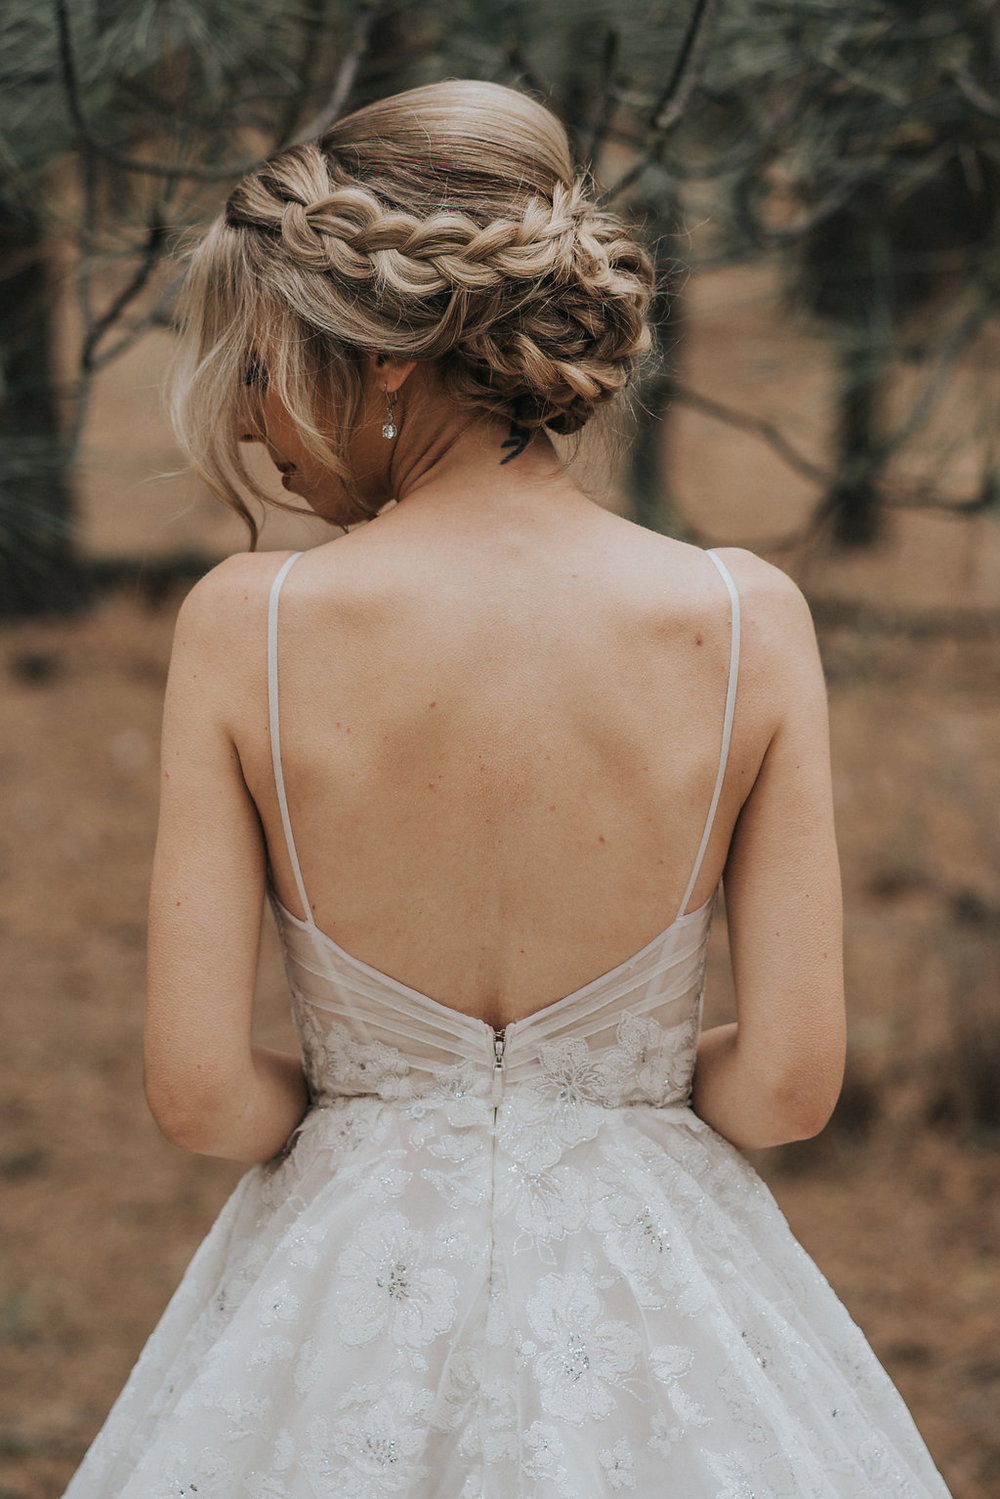 Low Back Wedding Dress with Floral Print and a Braid Updo